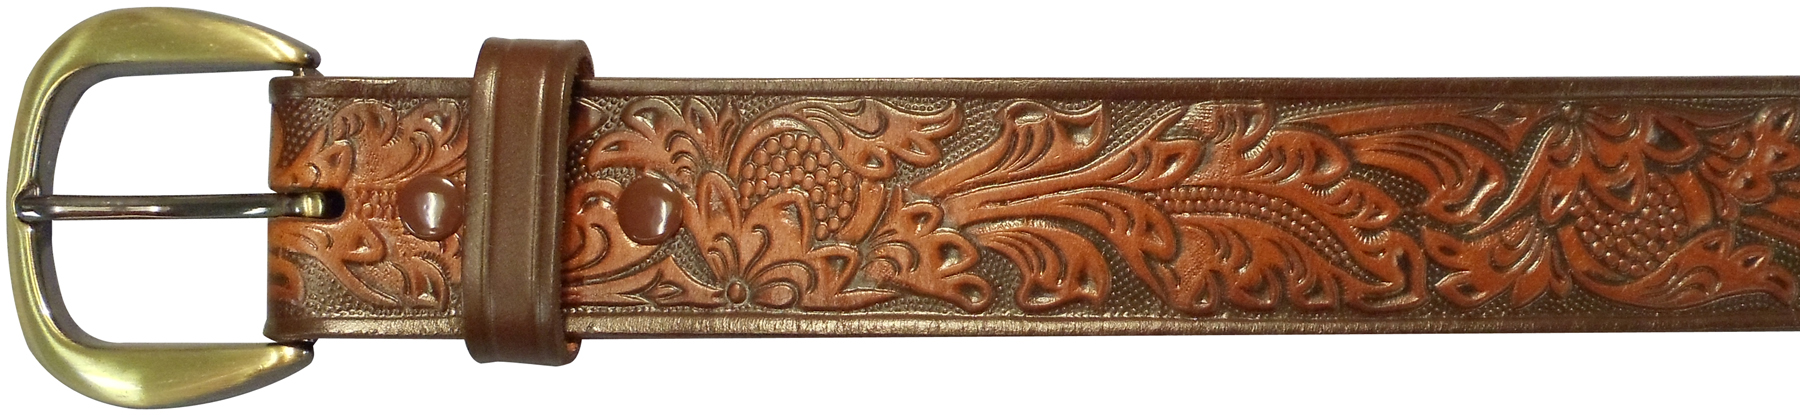 "10610110232 - 32"" Brown Leather Embossed Belt"